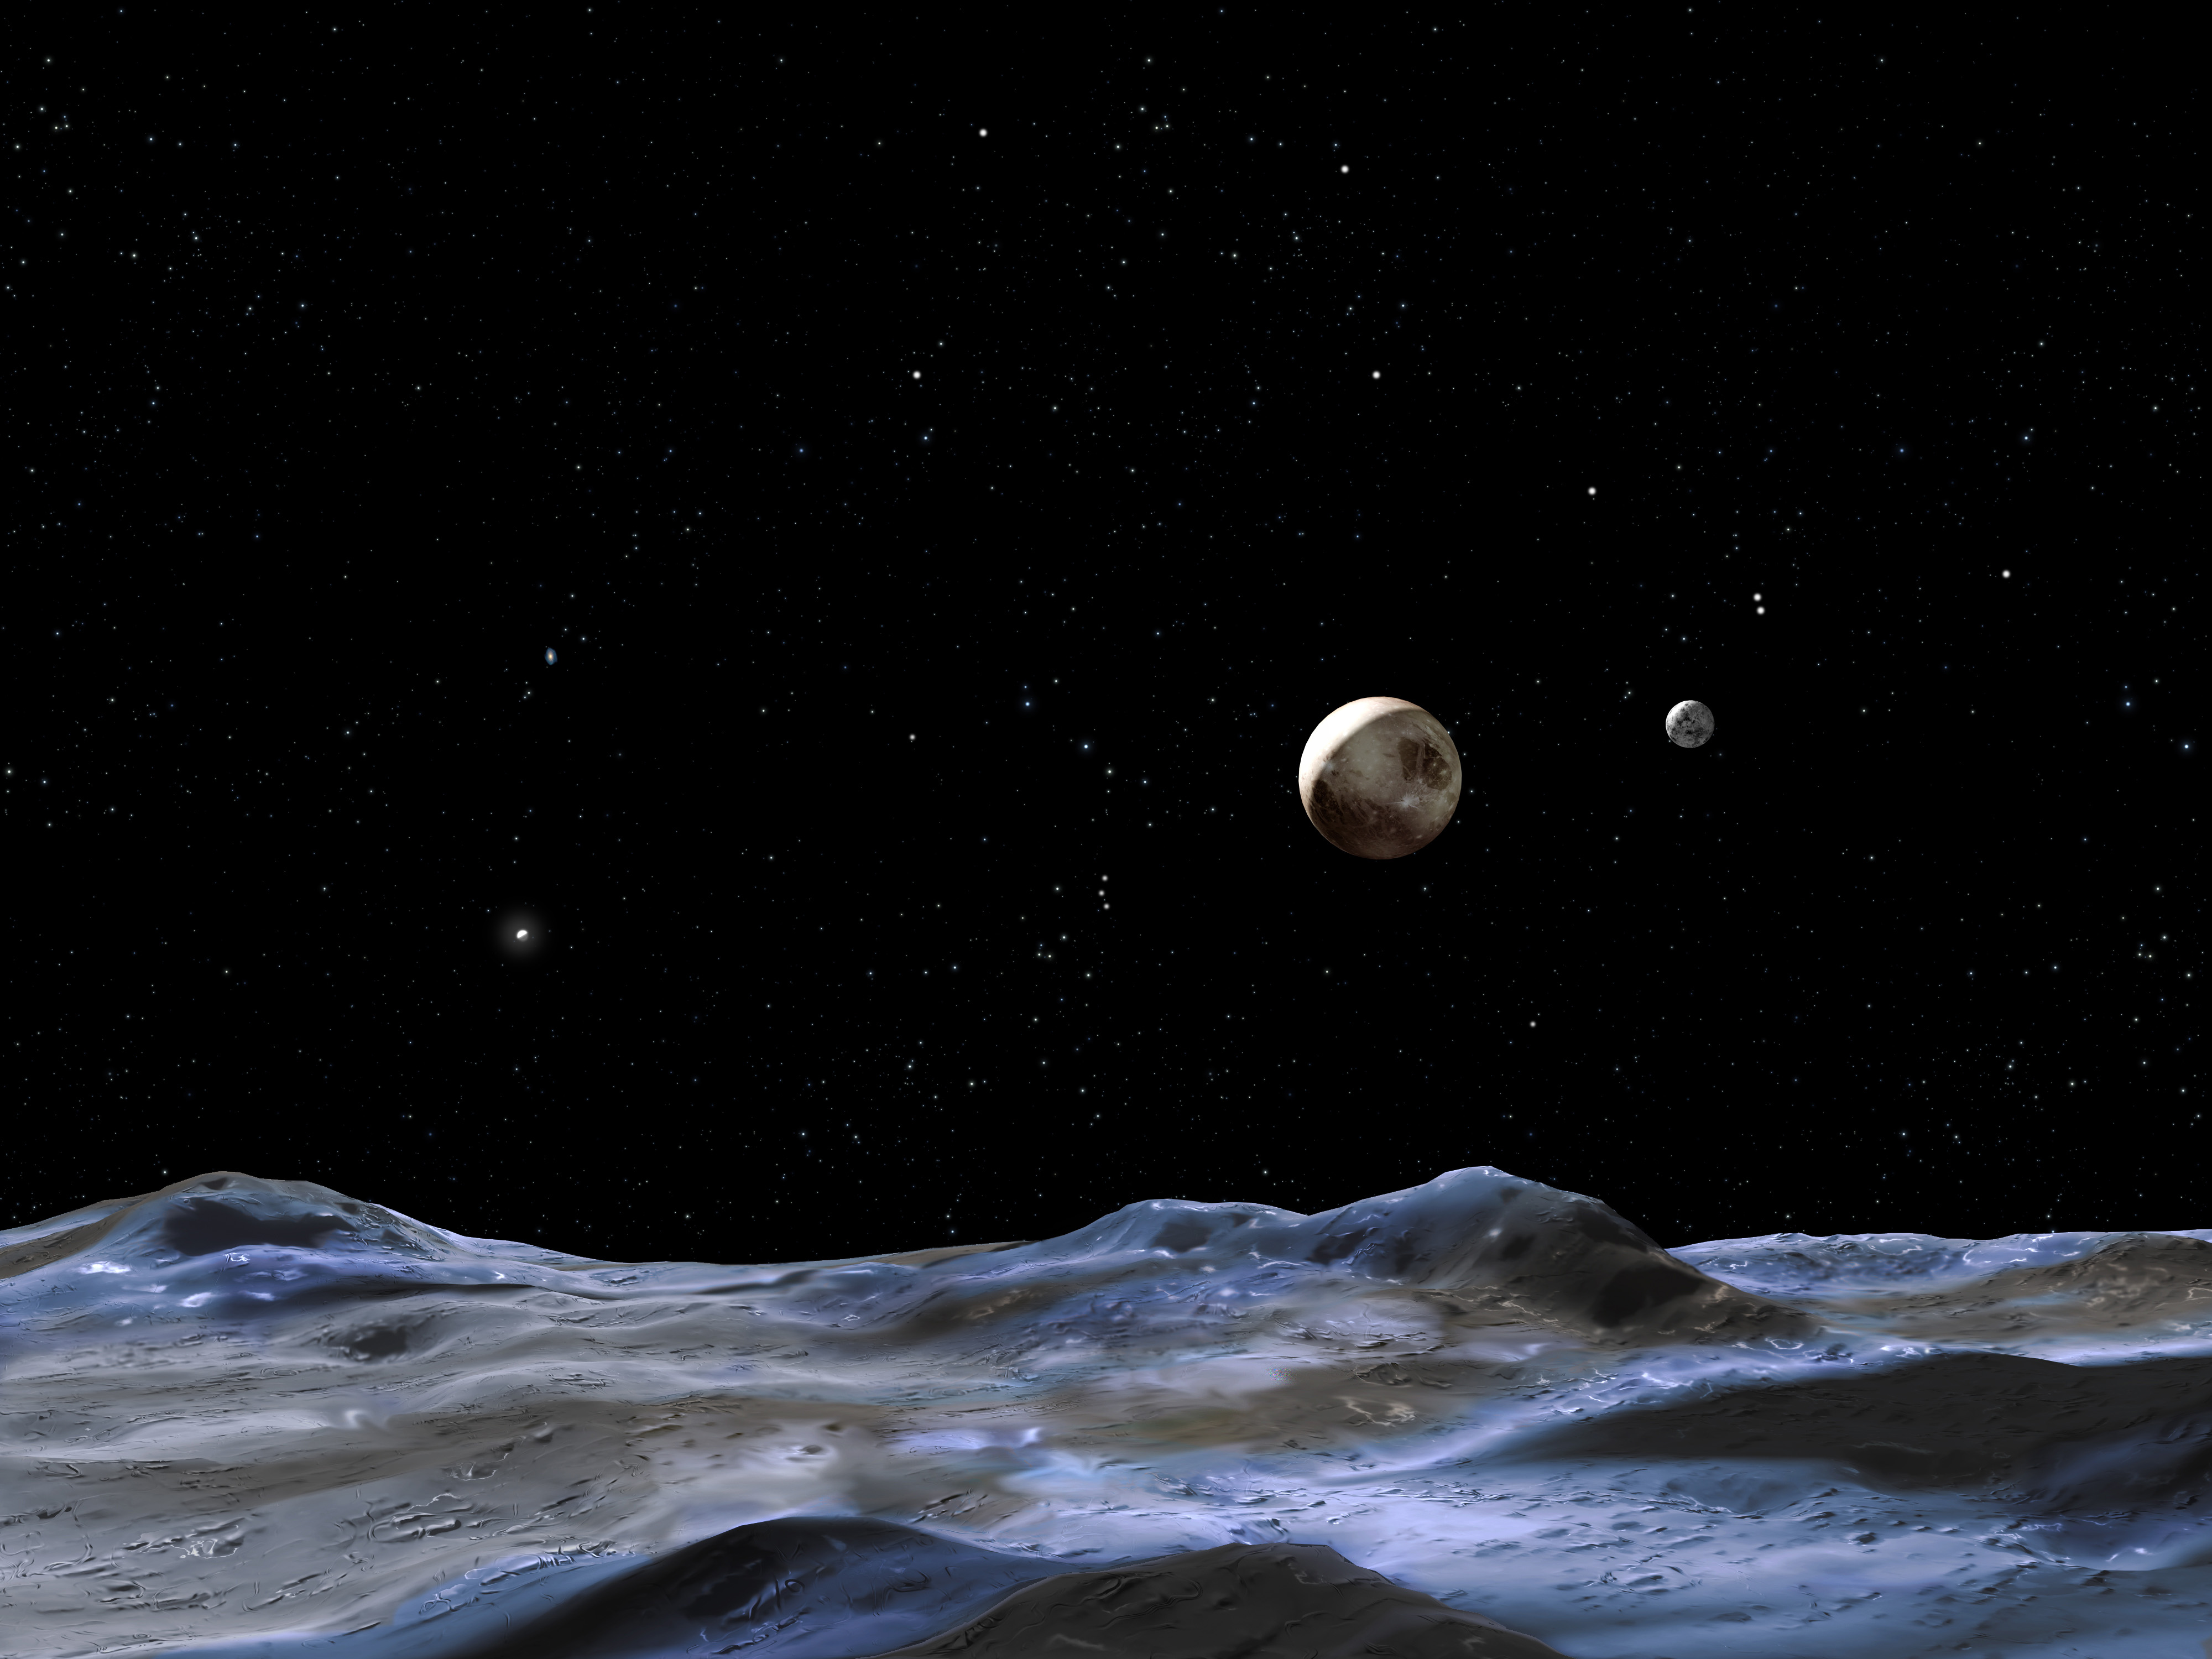 Photo of This artist concept shows Pluto and some of its moons, as viewed from the surface of one of the moons. Pluto is the large disk at center. Charon is the smaller disk to the right.